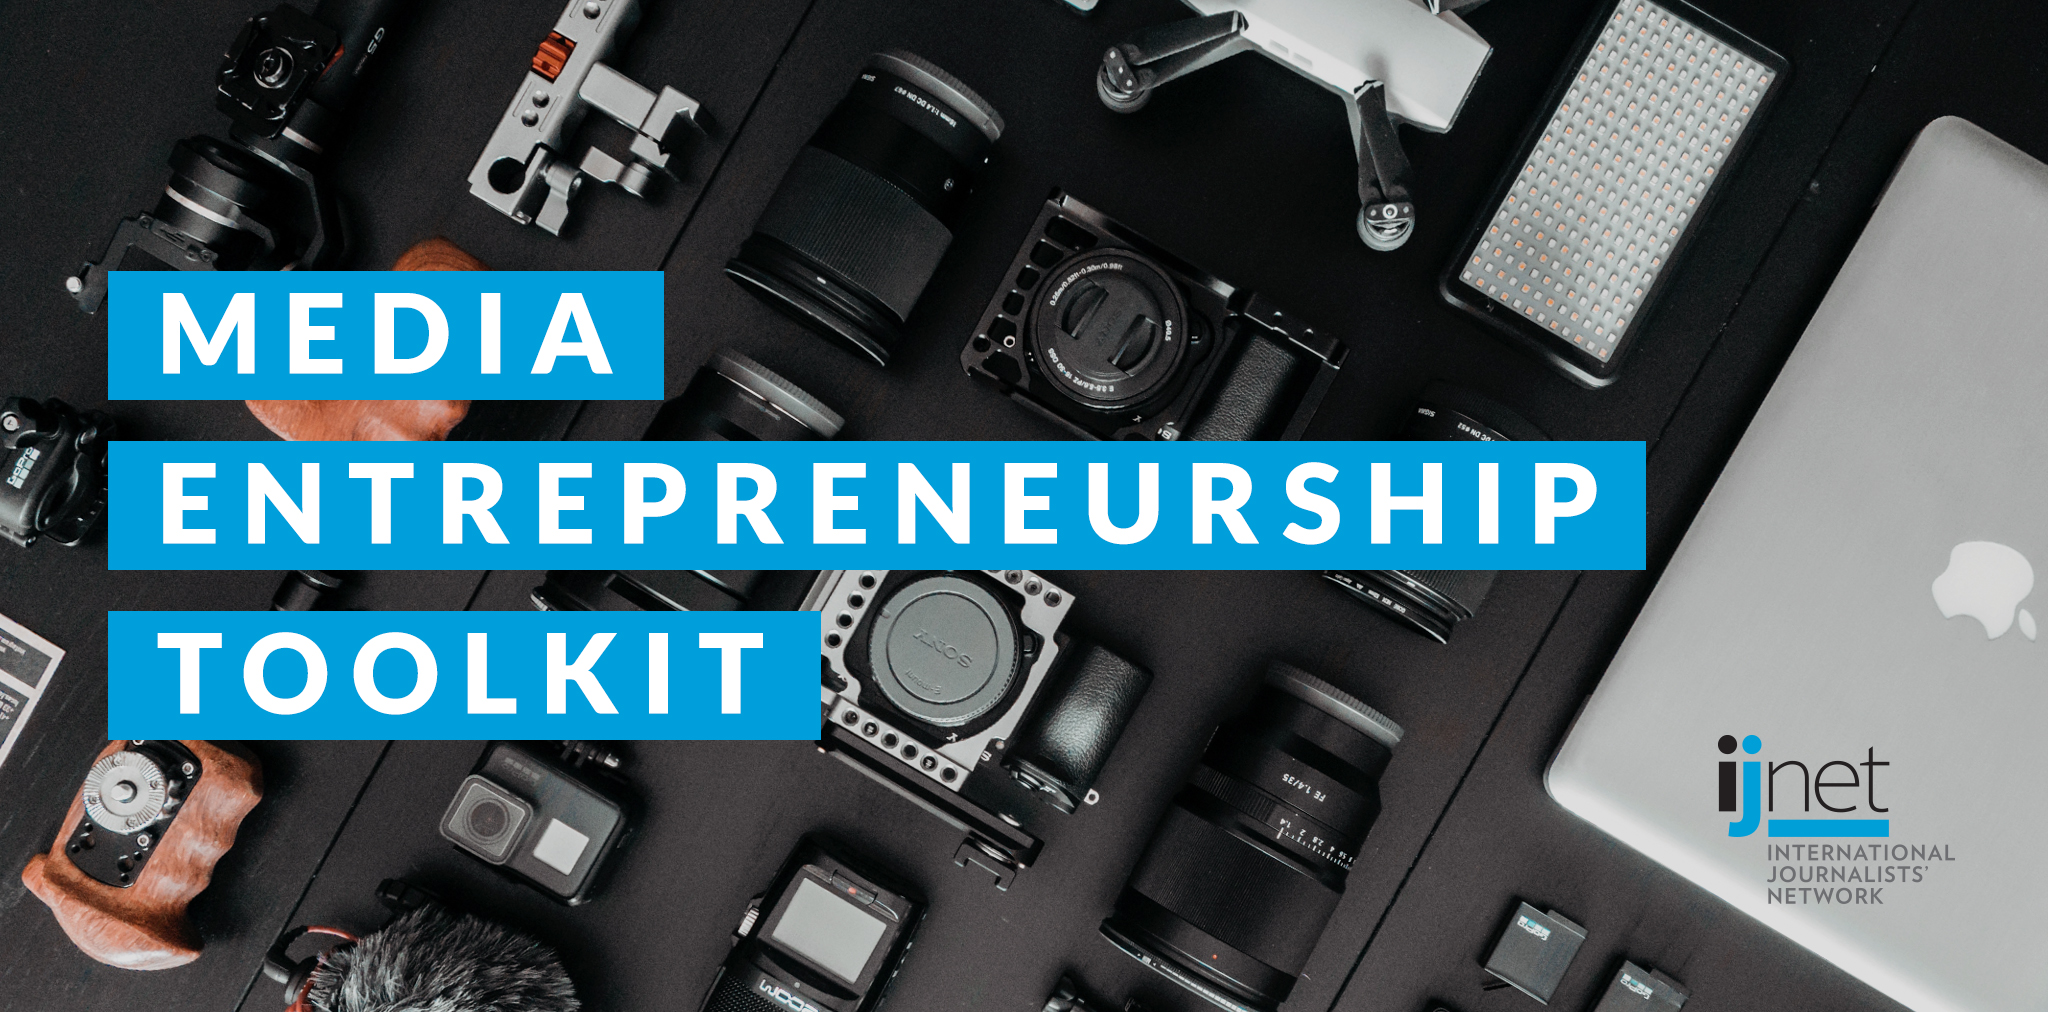 Media Entrepreneurship Toolkit logo